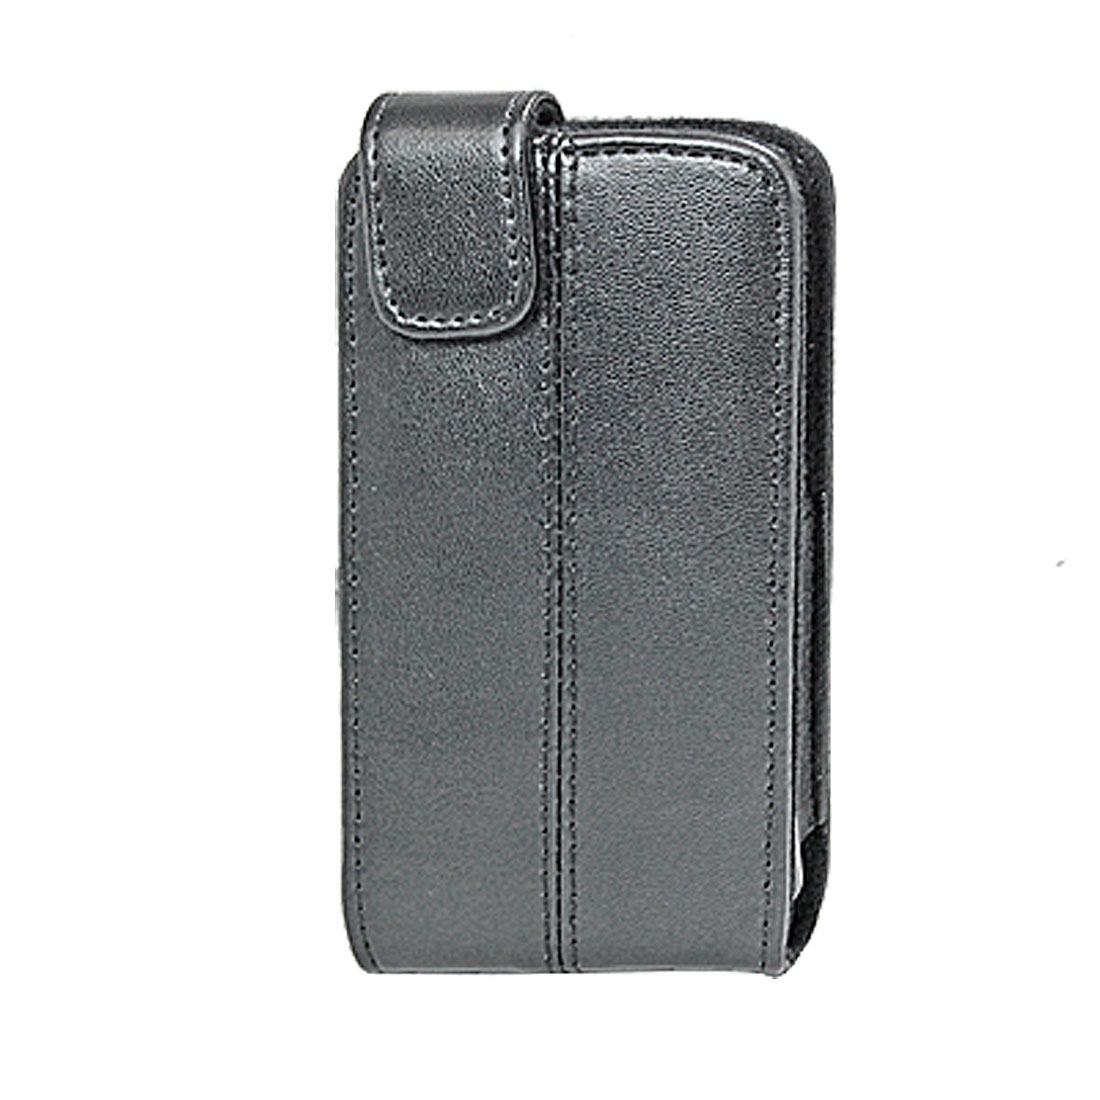 Black Faux Leather Case Cover Pouch for Apple iPhone 3G